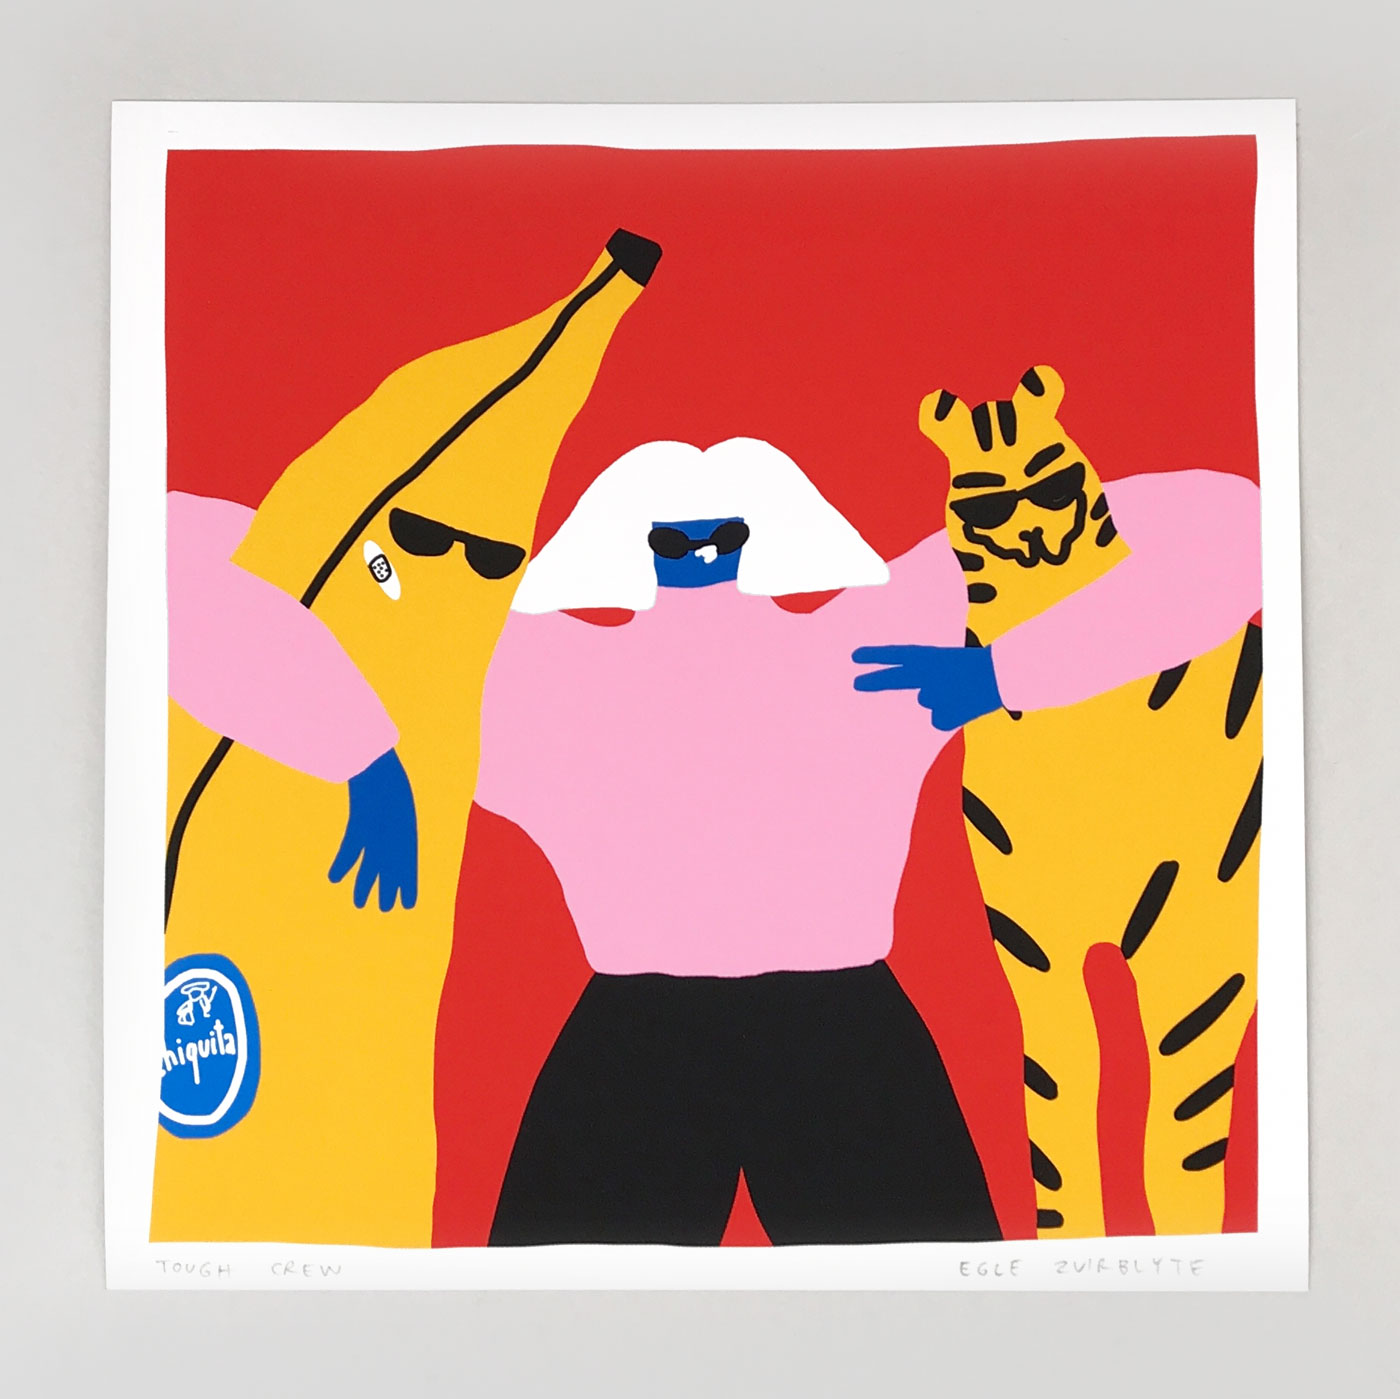 Tough Crew giclee print by Egle Zvirblyte